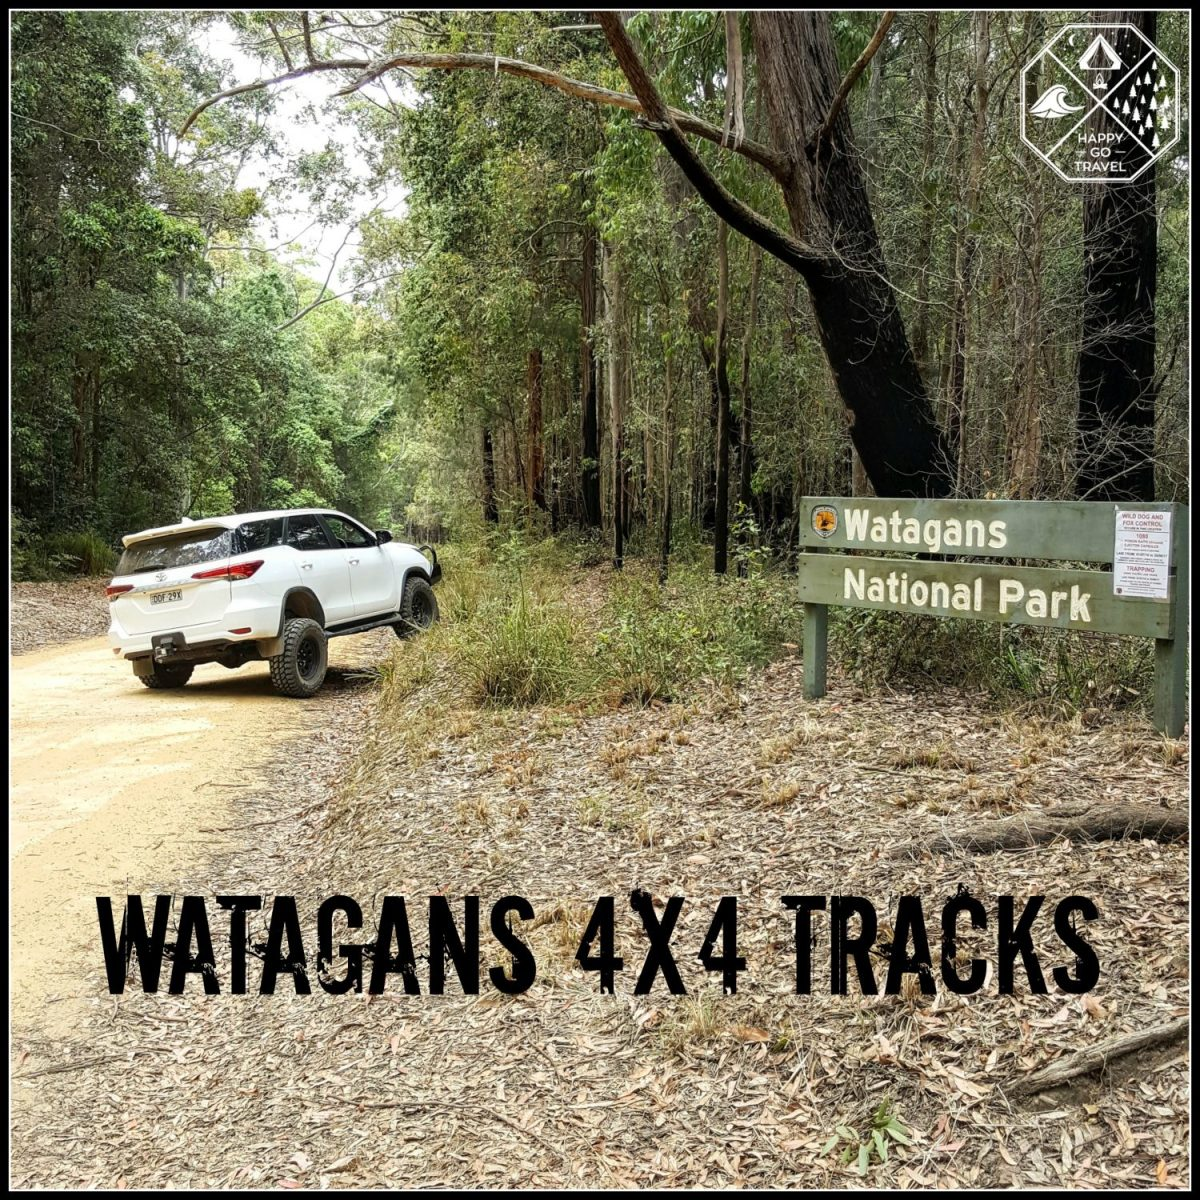 Watagans National Park 4x4 Tracks